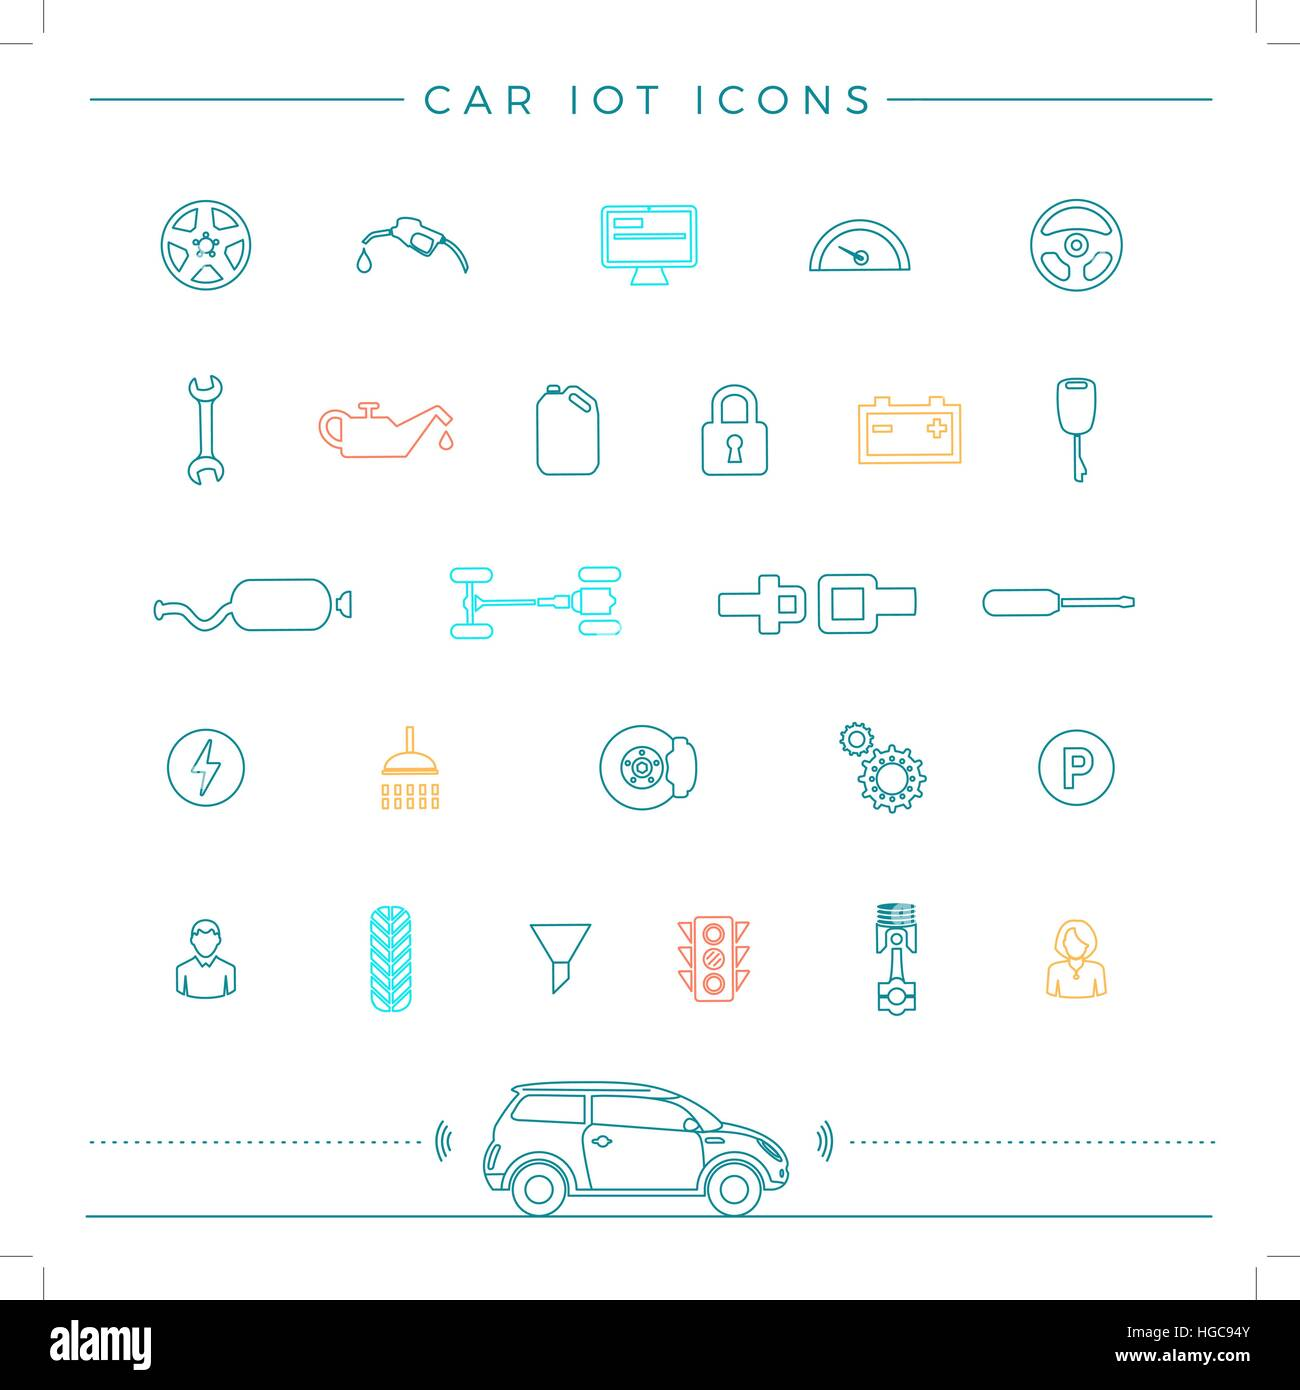 Internet Of Things For The Car Icons - Stock Image